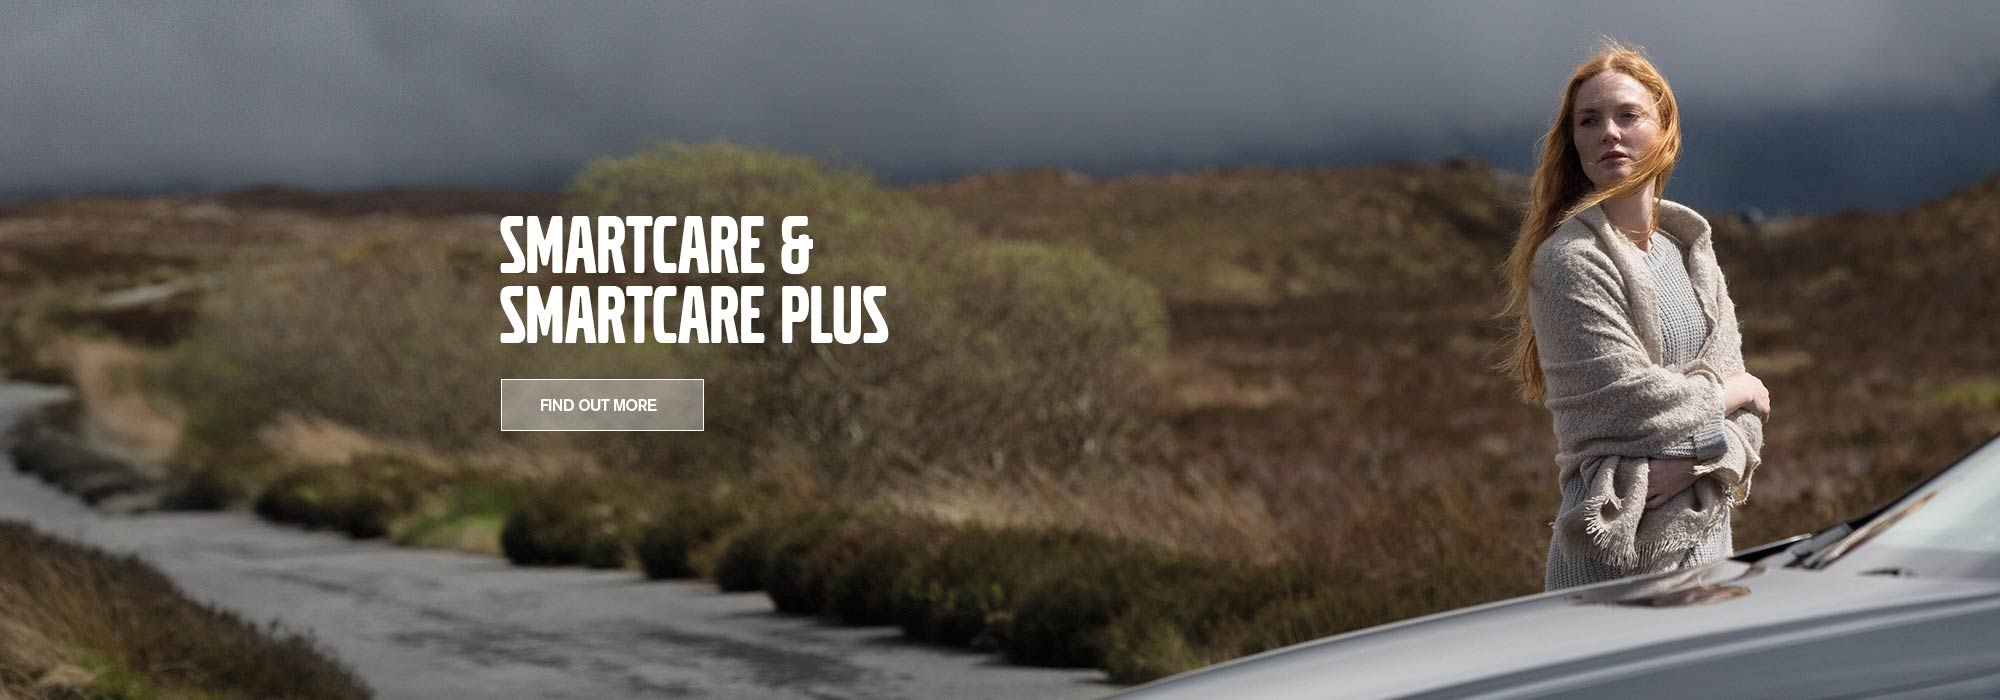 Volvo SmartCare and SmartCare Plus